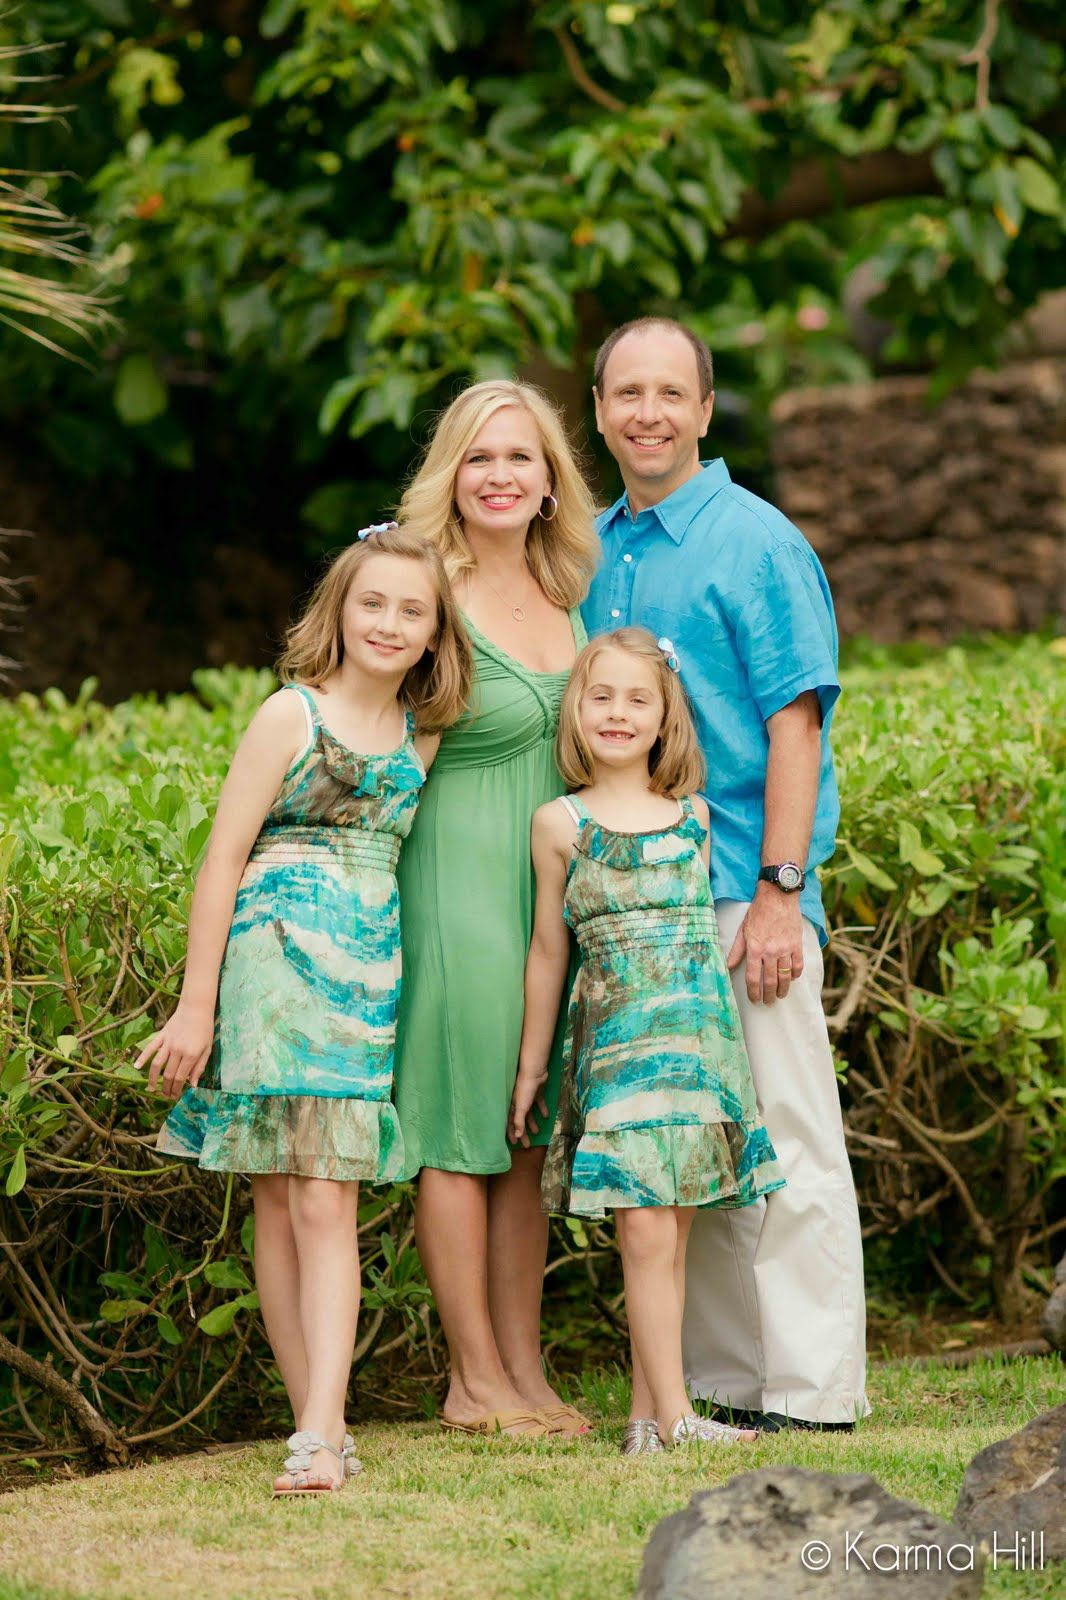 Maui Photographer - Karma Hill: What to Wear? A guide to planning ...